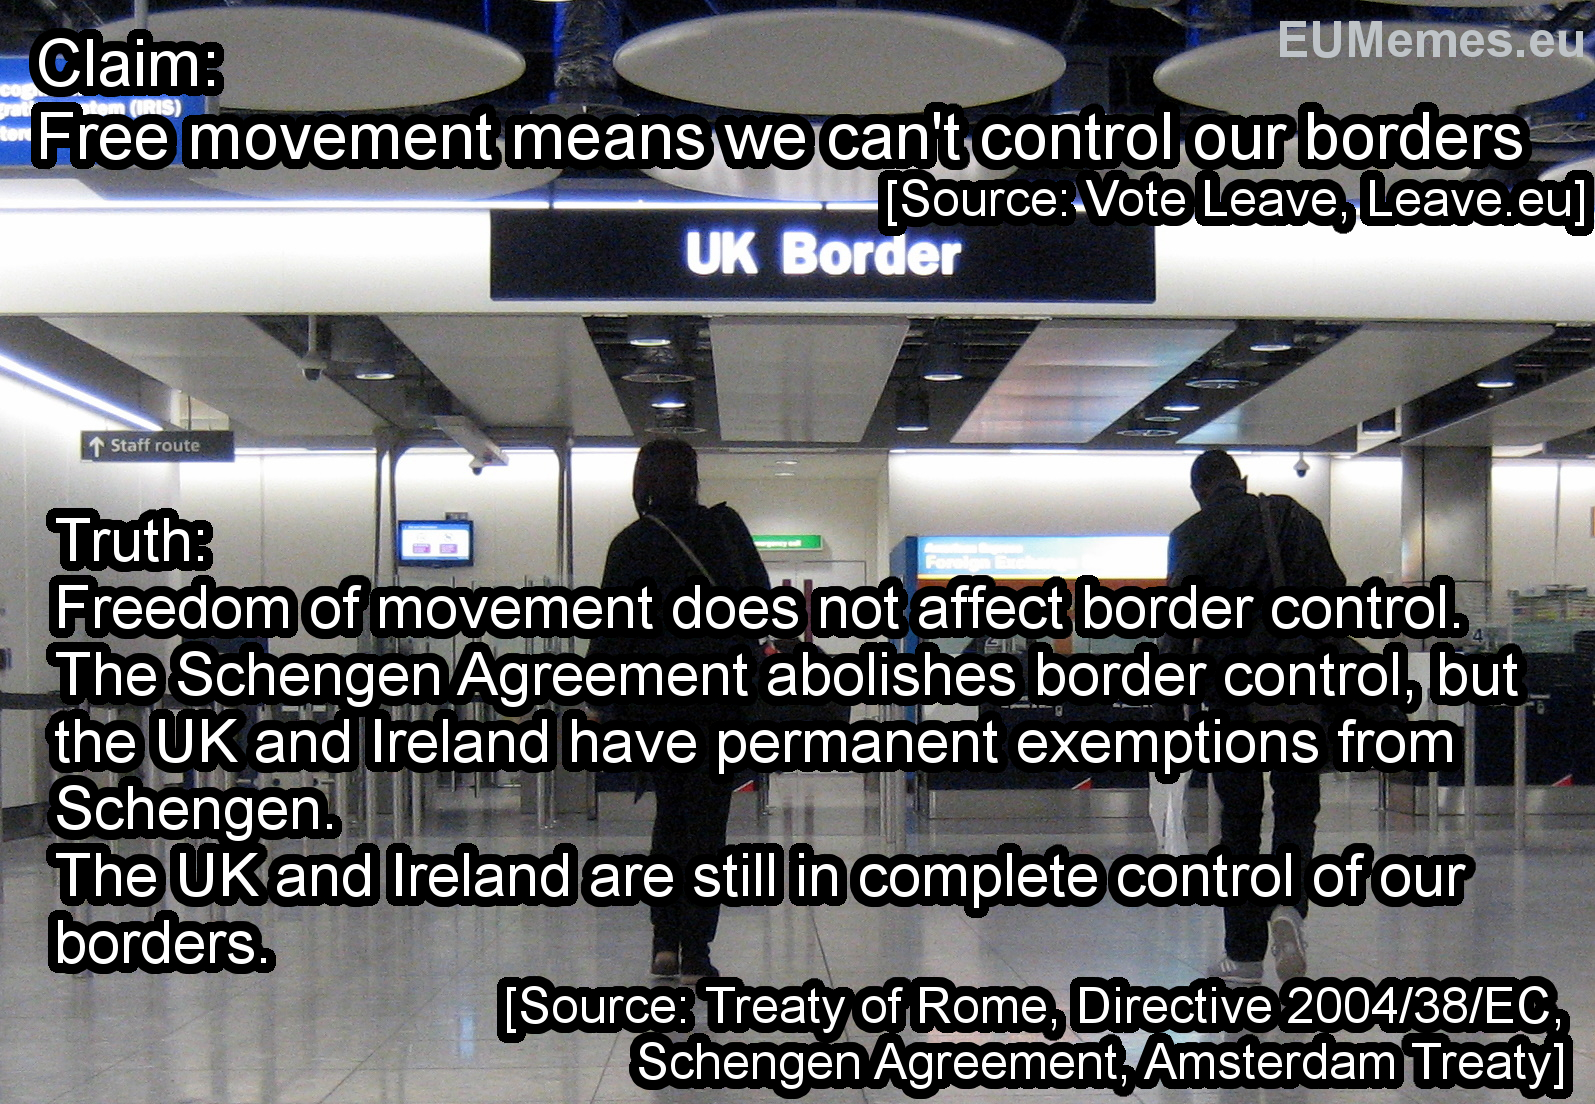 The UK has complete control of its borders